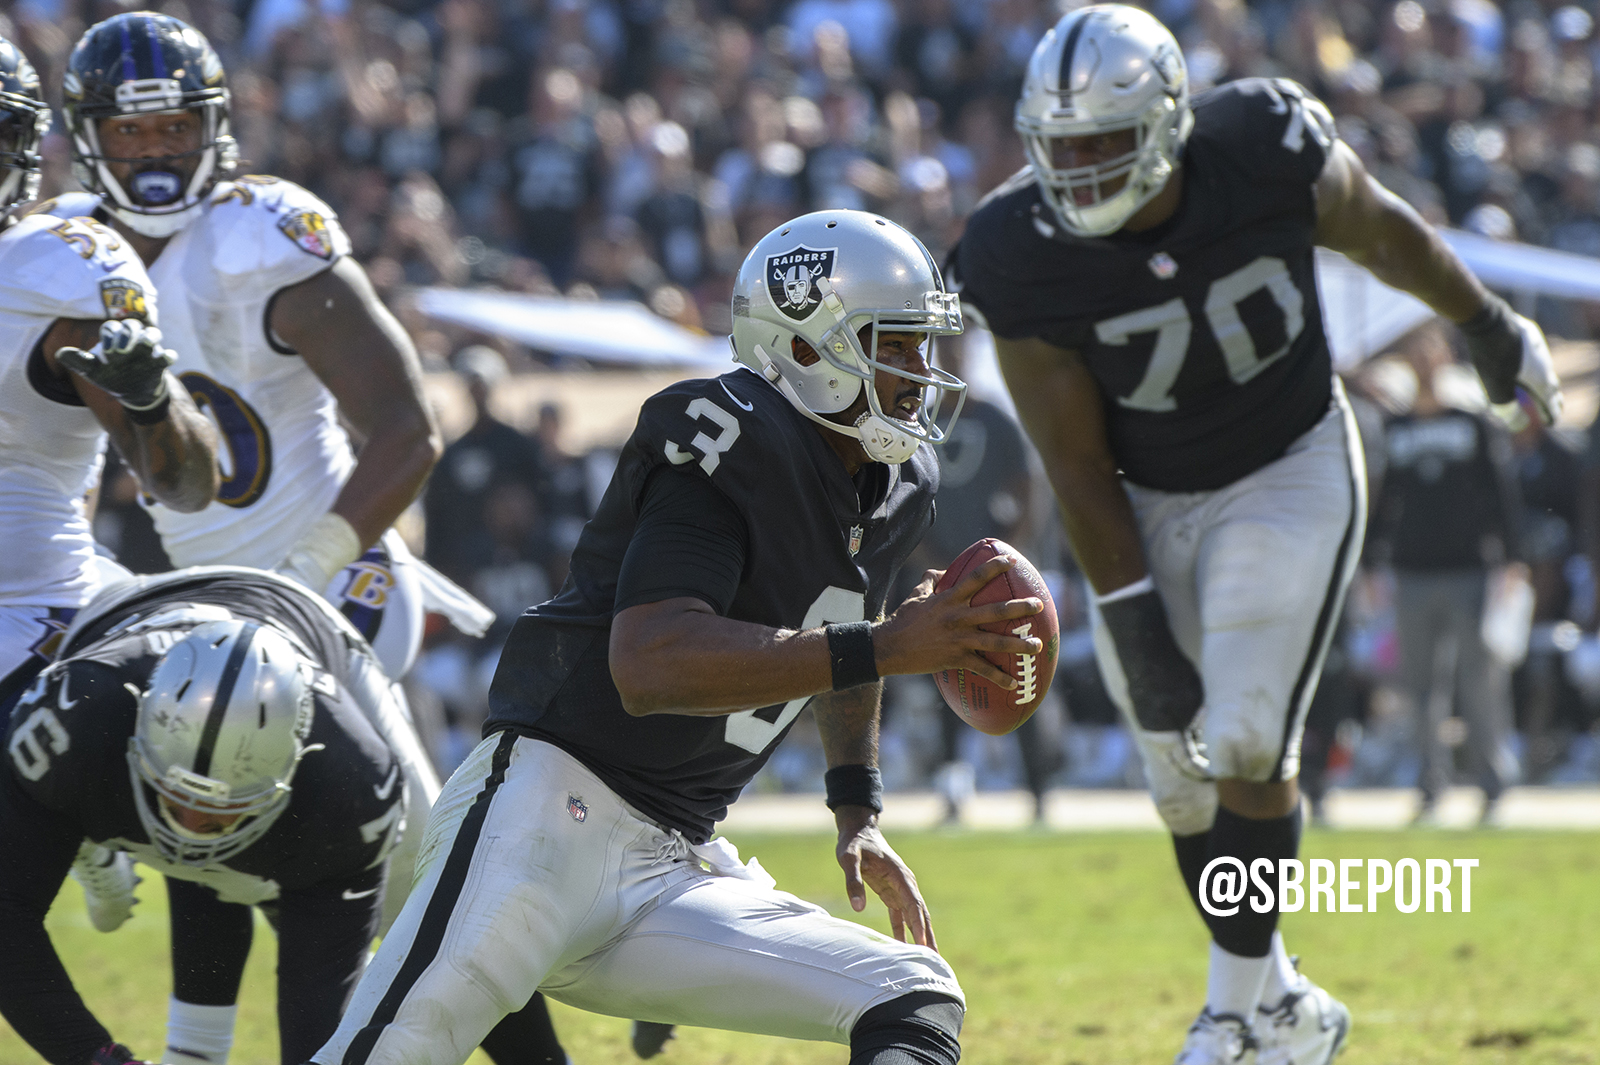 Injured Raiders fall to Ravens, drop third straight game